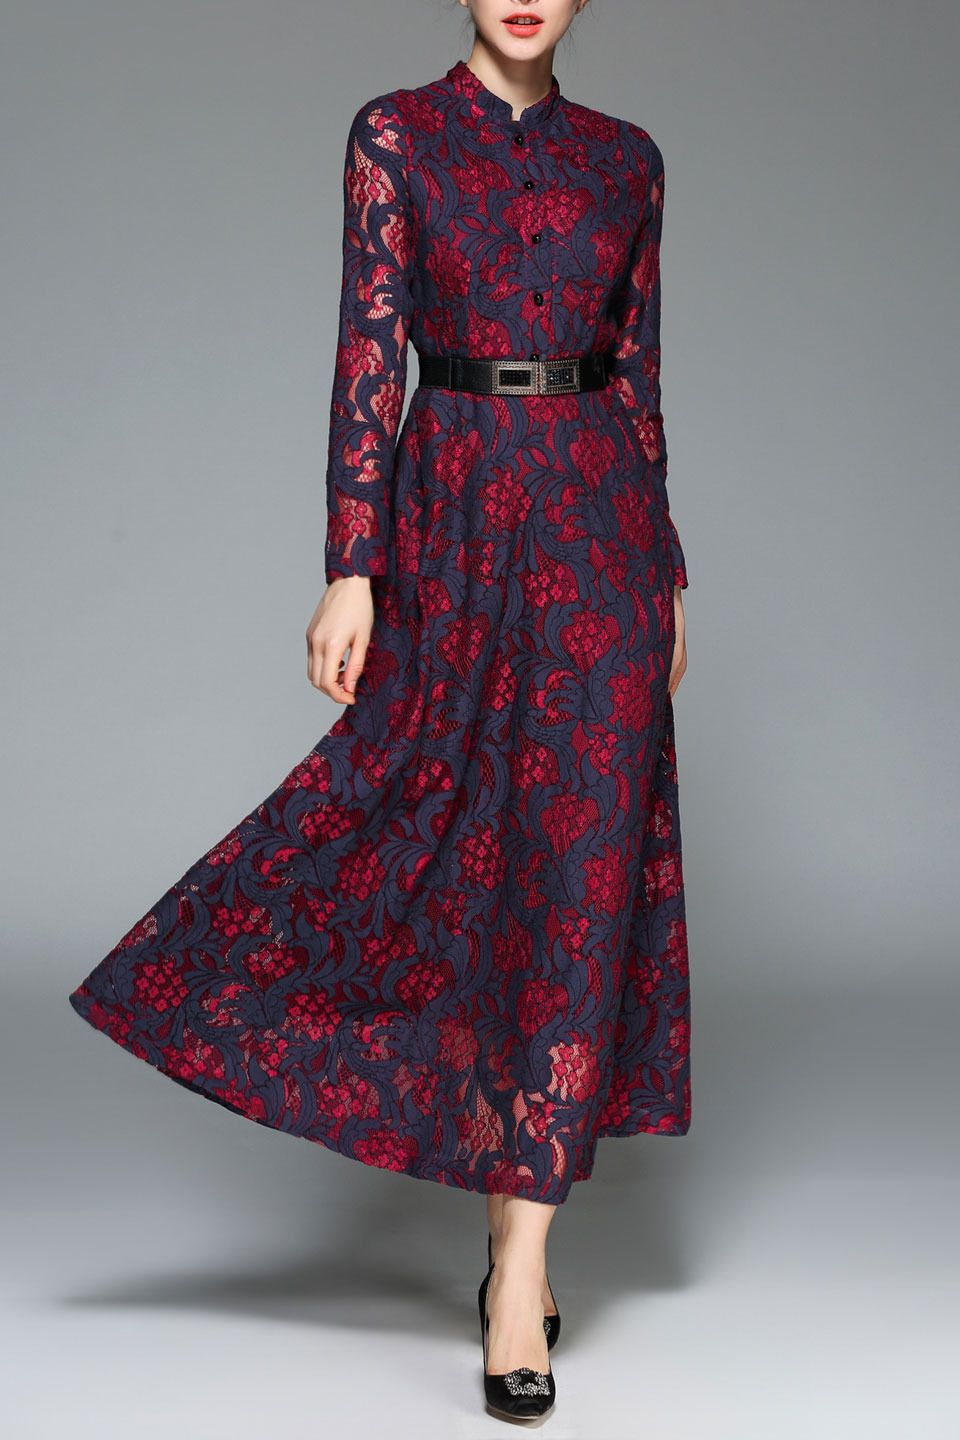 1c9c1fbde5 Kaimilan - Melanie Dress in Wine Red | Clothes in 2019 | Burgundy ...